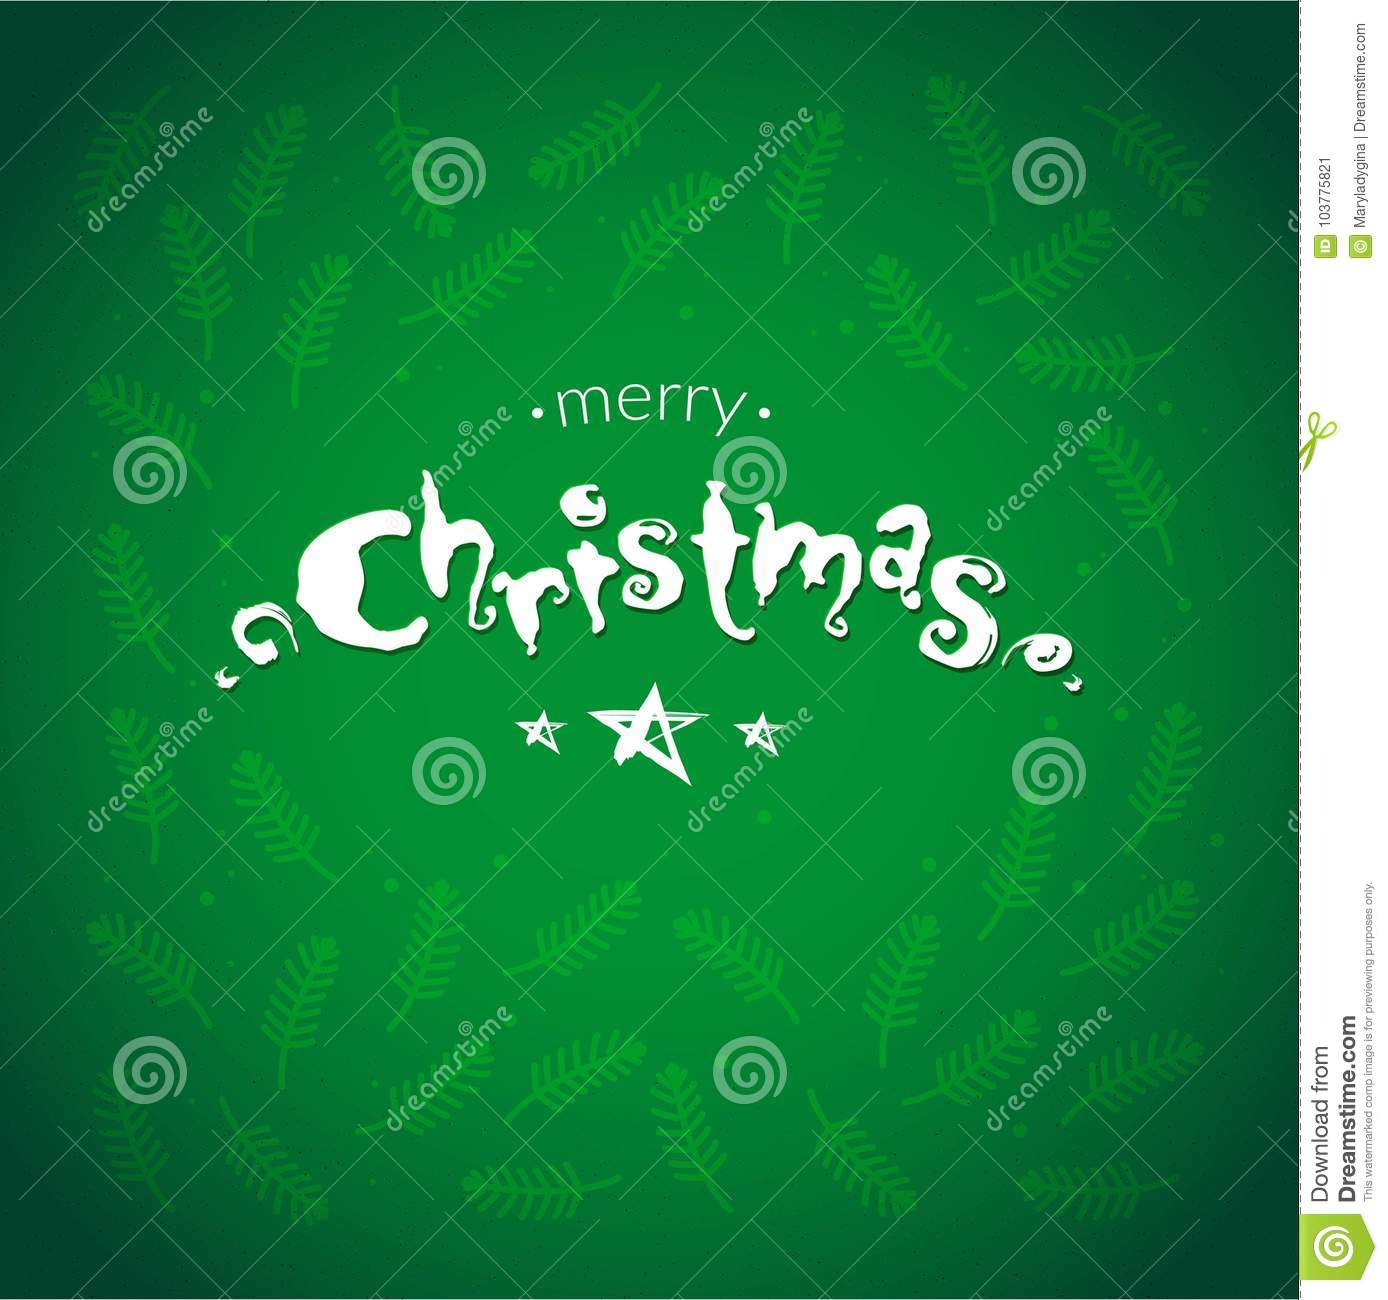 Merry Christmas Cards With Botanical Elements Frame Stock Vector ...